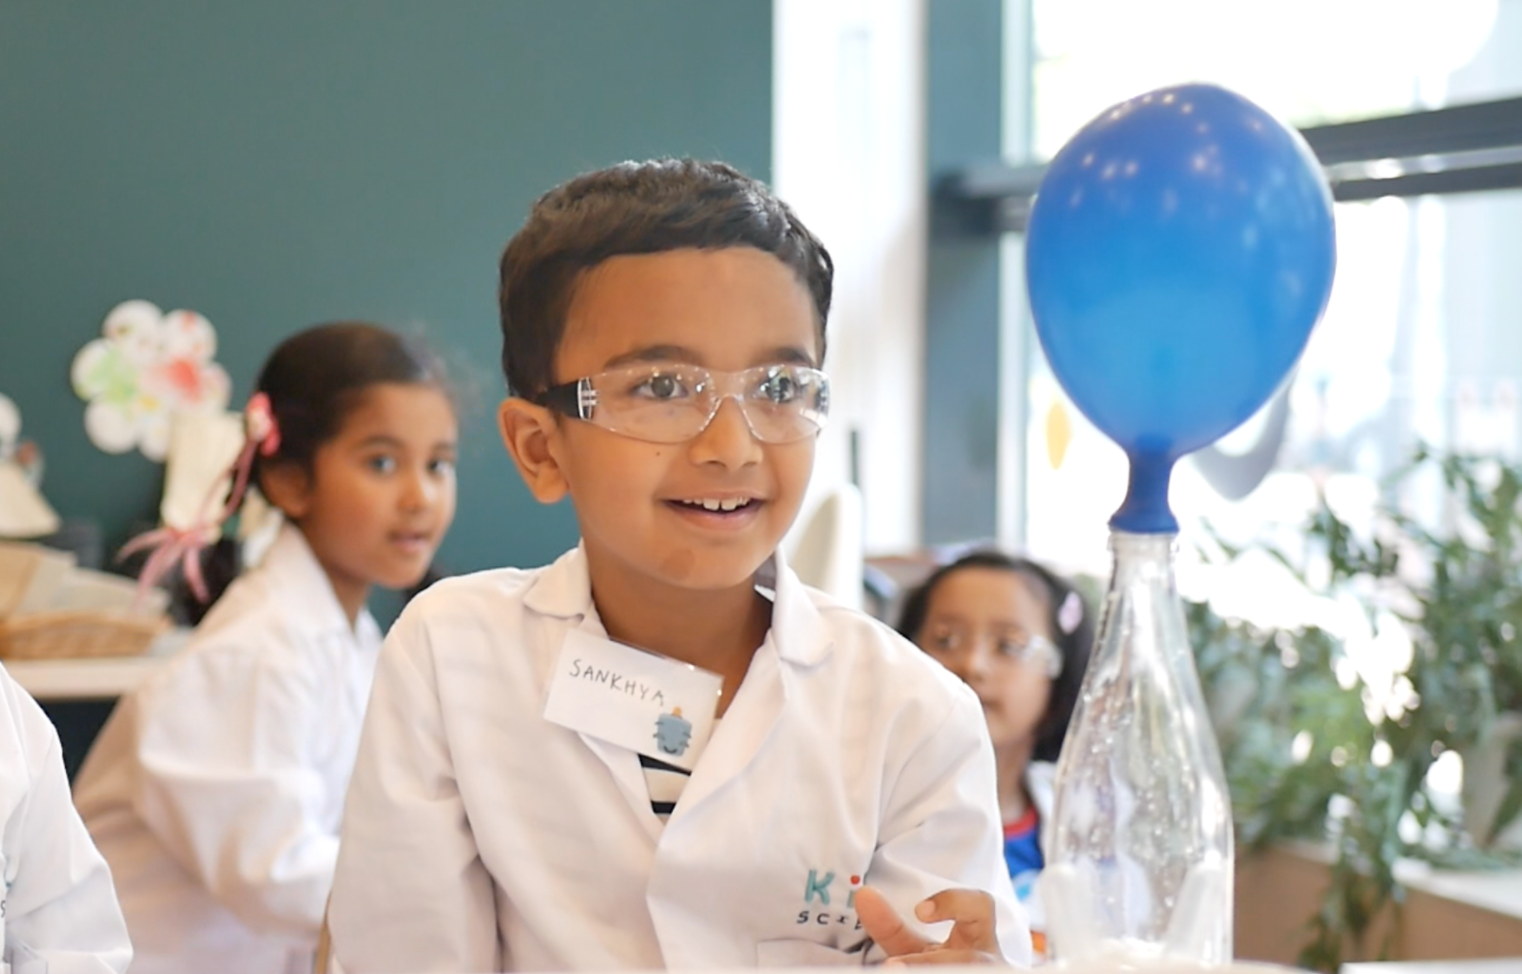 little boy scientist in lab coat watching balloon inflate